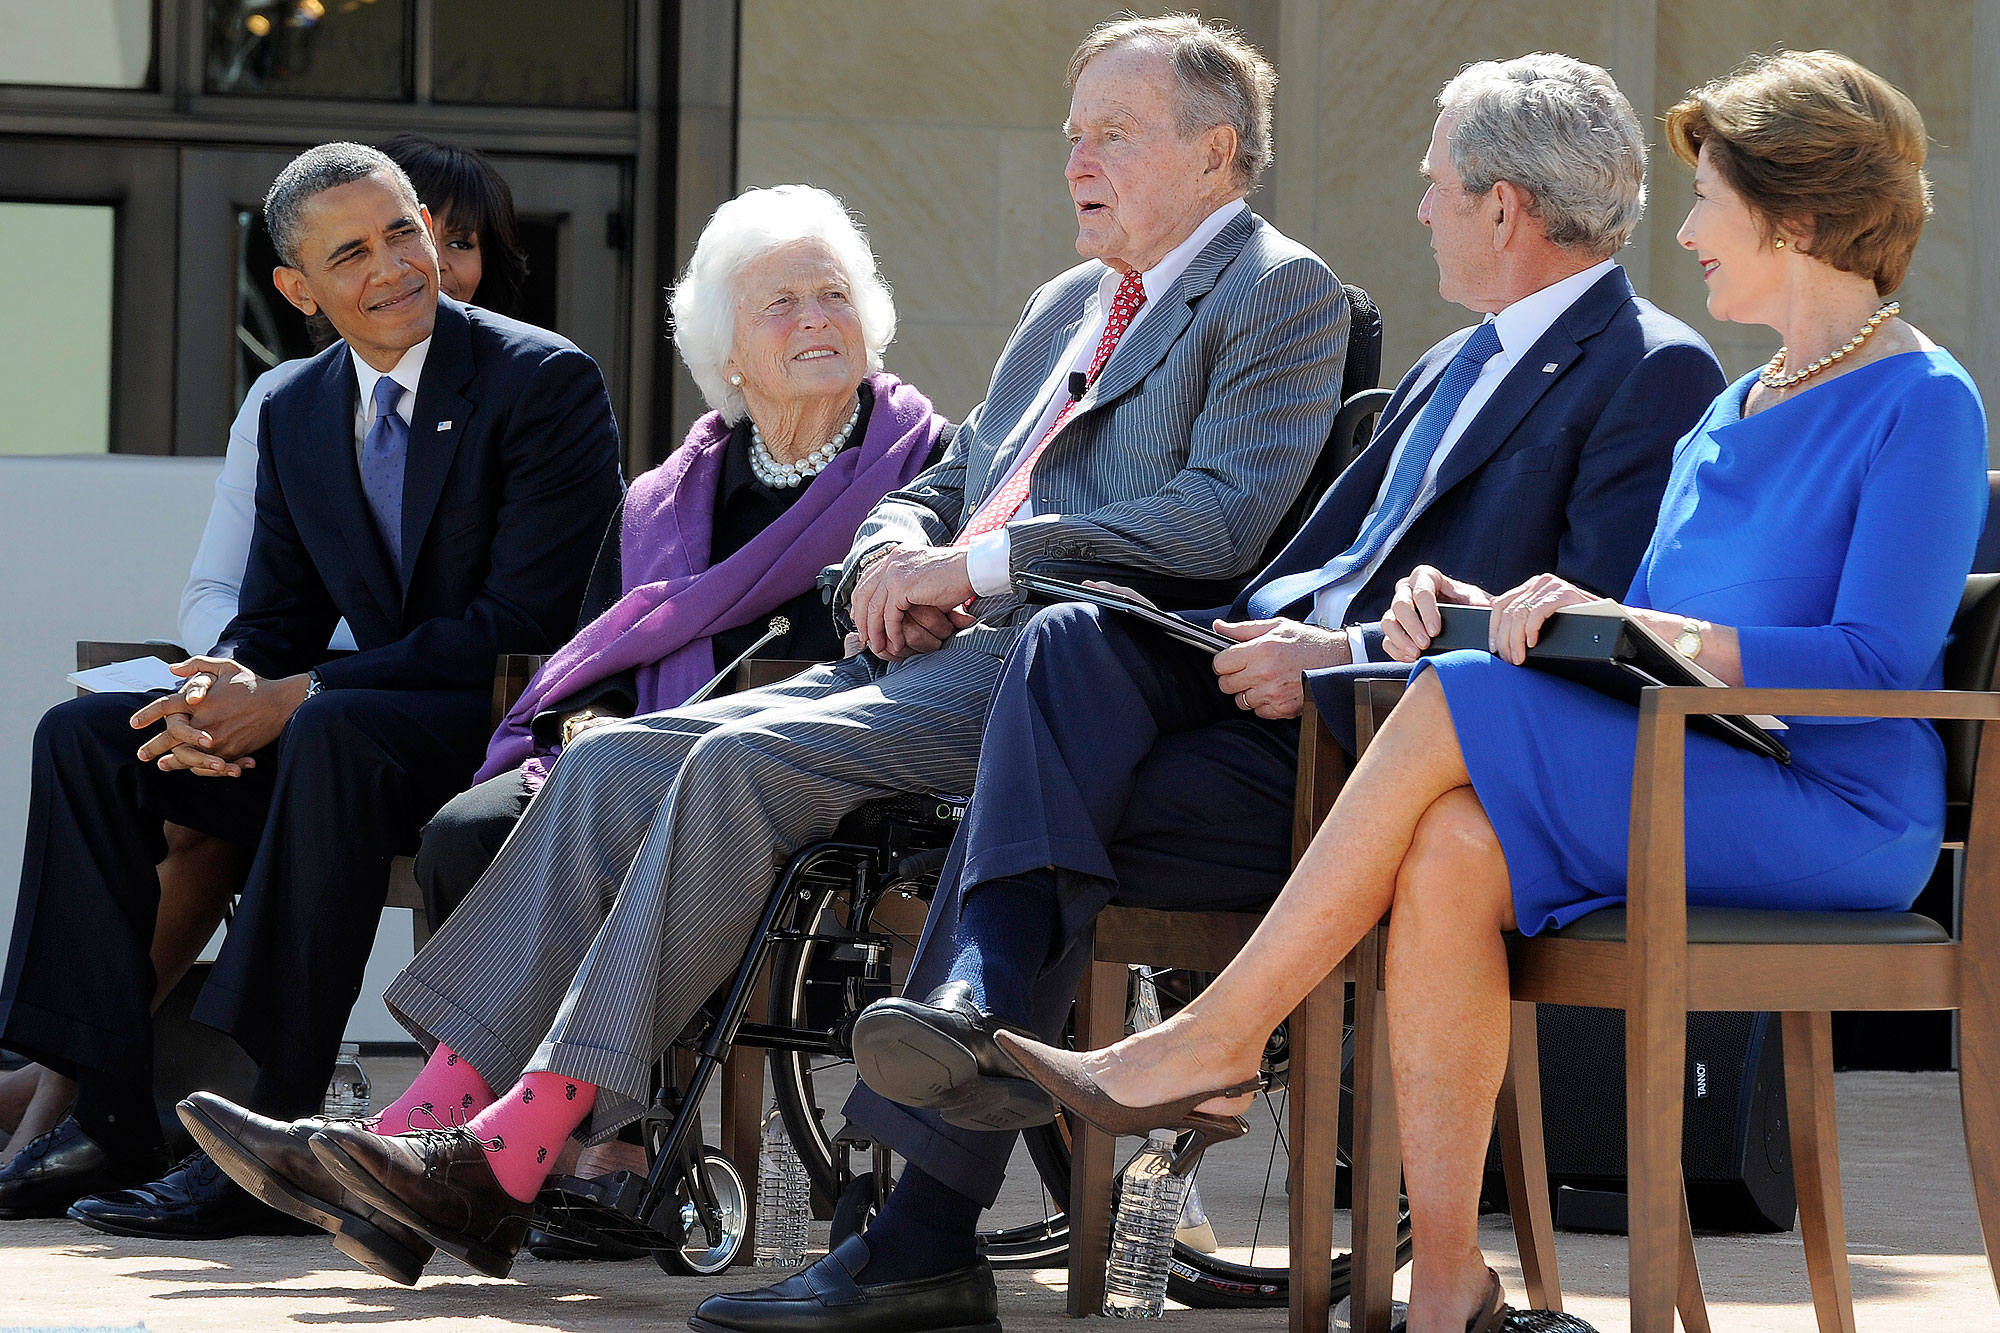 Americans Remember George H.W. Bush with Touching #SocksForBush Social Media Campaign obama-bush